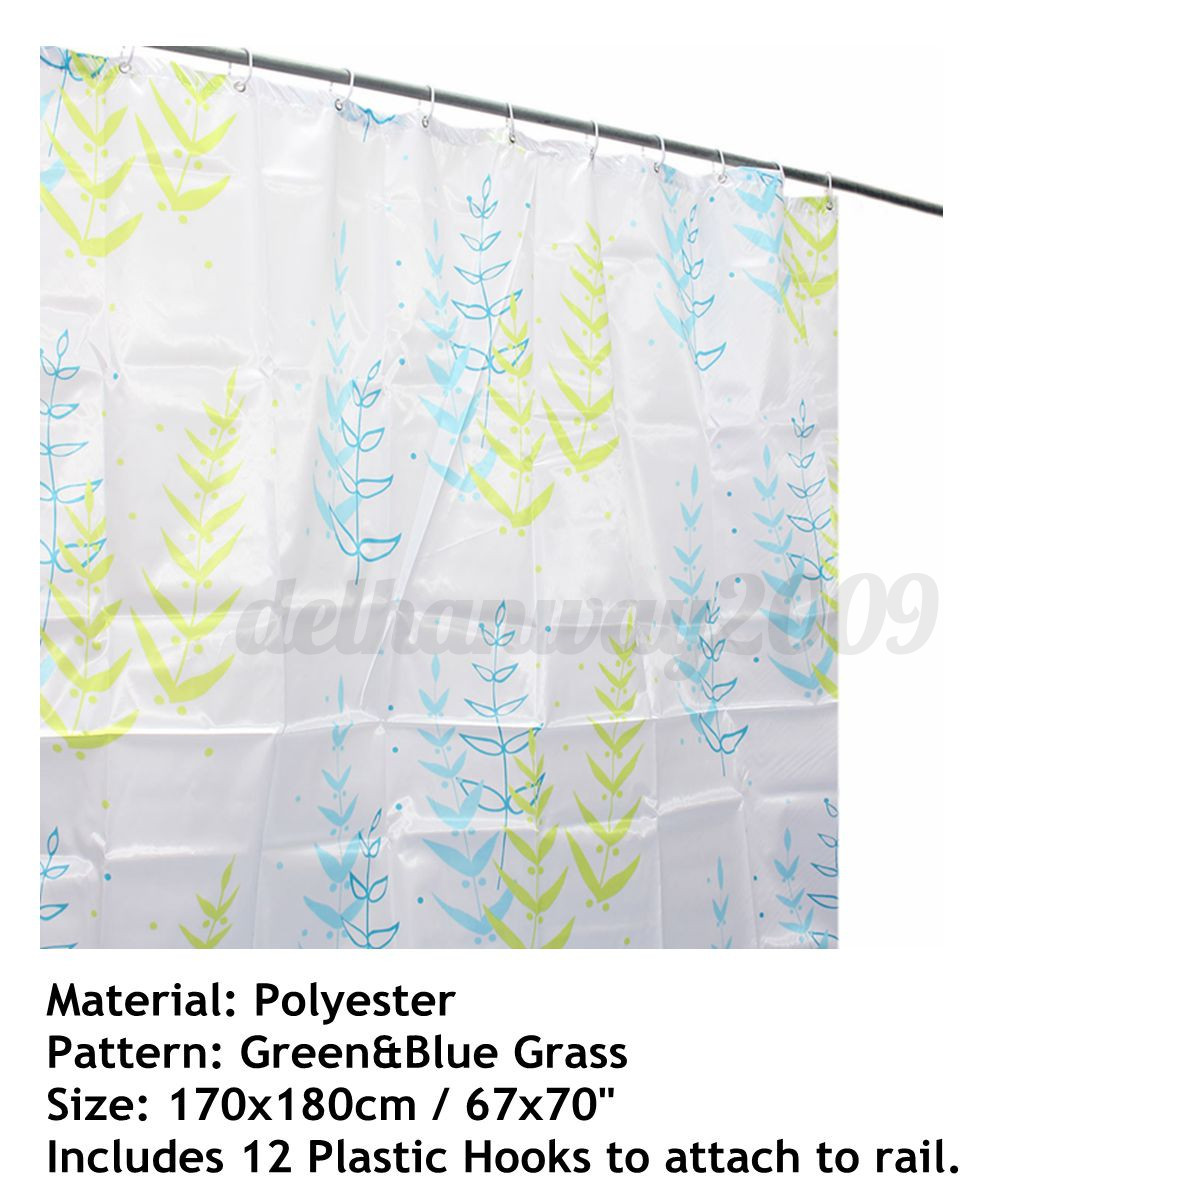 Clear shower curtain liner - Home Amp Garden Gt Bath Gt Shower Curtains